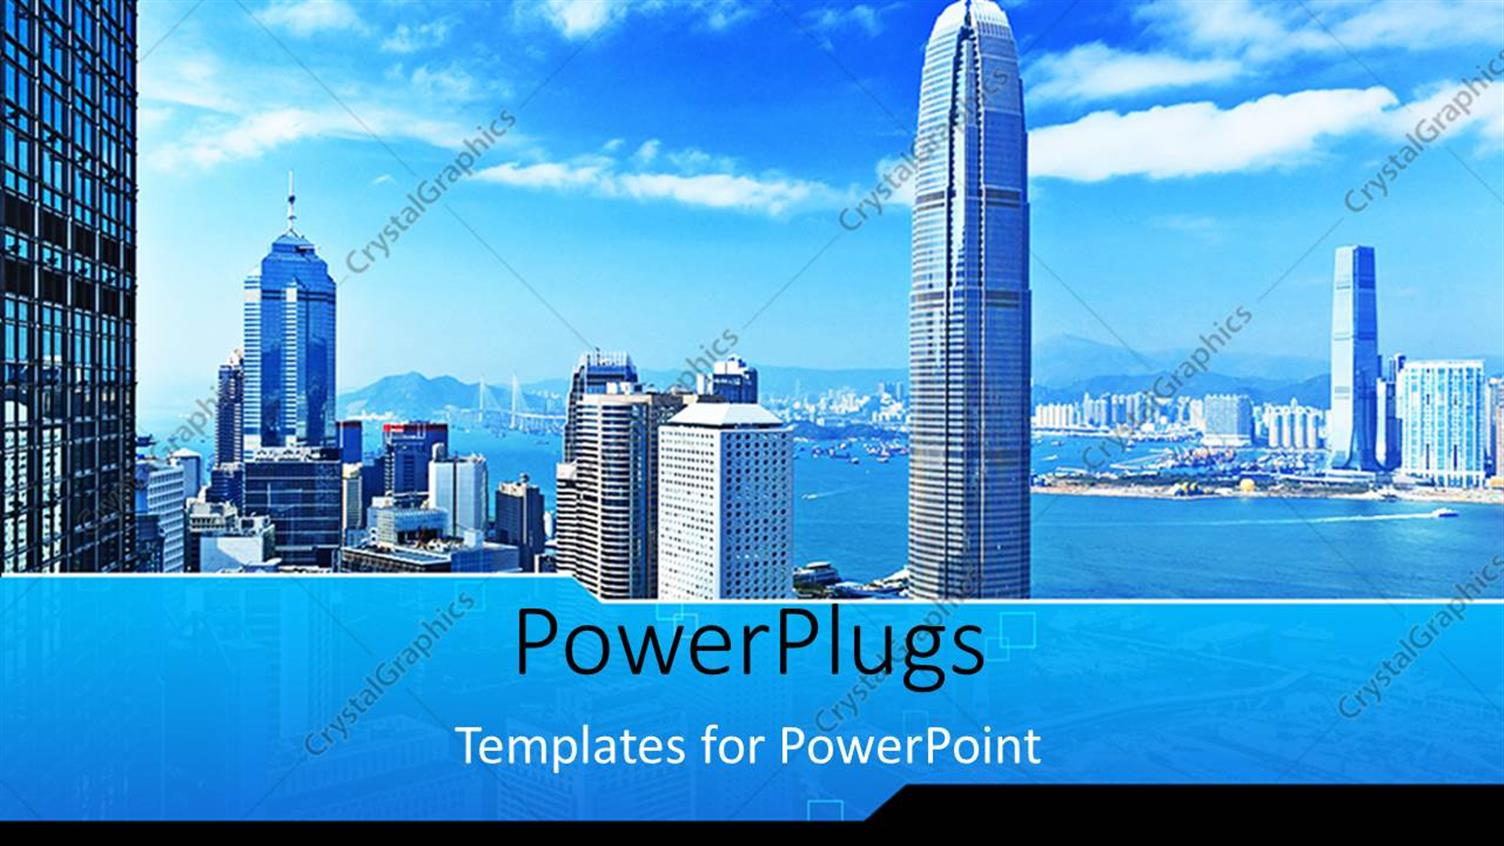 PowerPoint Template Displaying Landscape View of Mega City with Skyscrapers